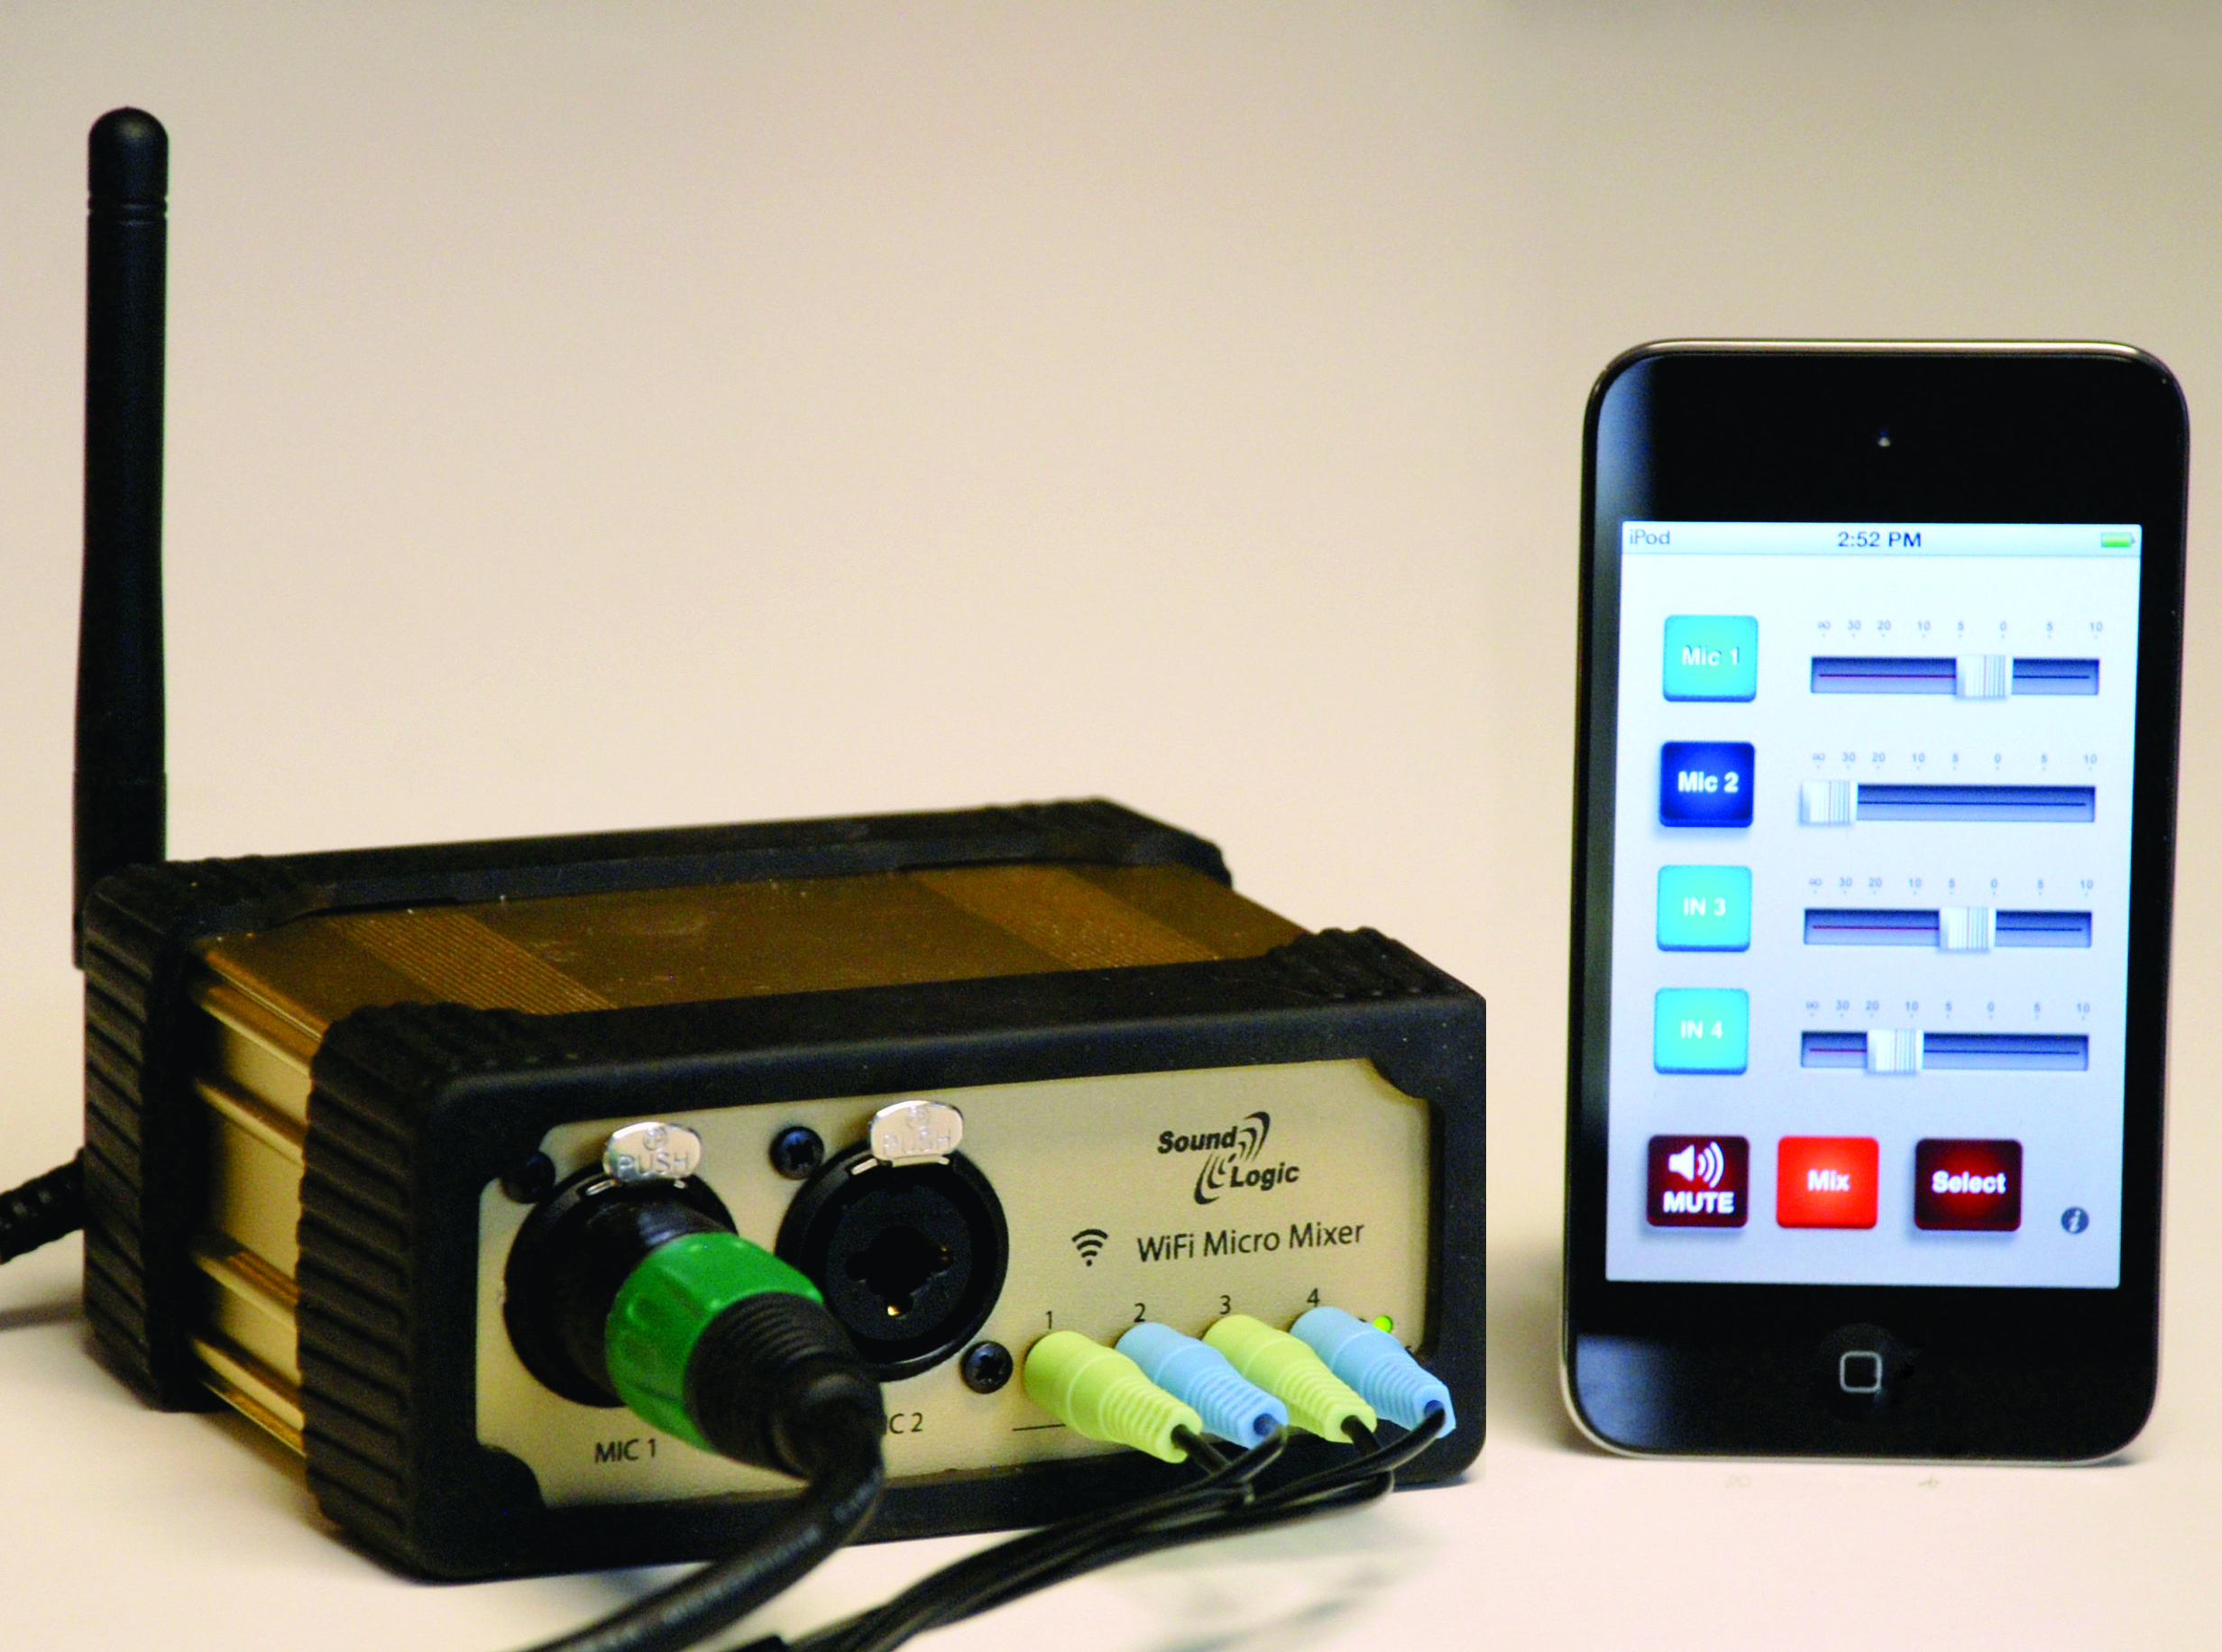 smallest 4ch wifi audio mixer for iphone ipad and android mobile devices [ 2464 x 1832 Pixel ]